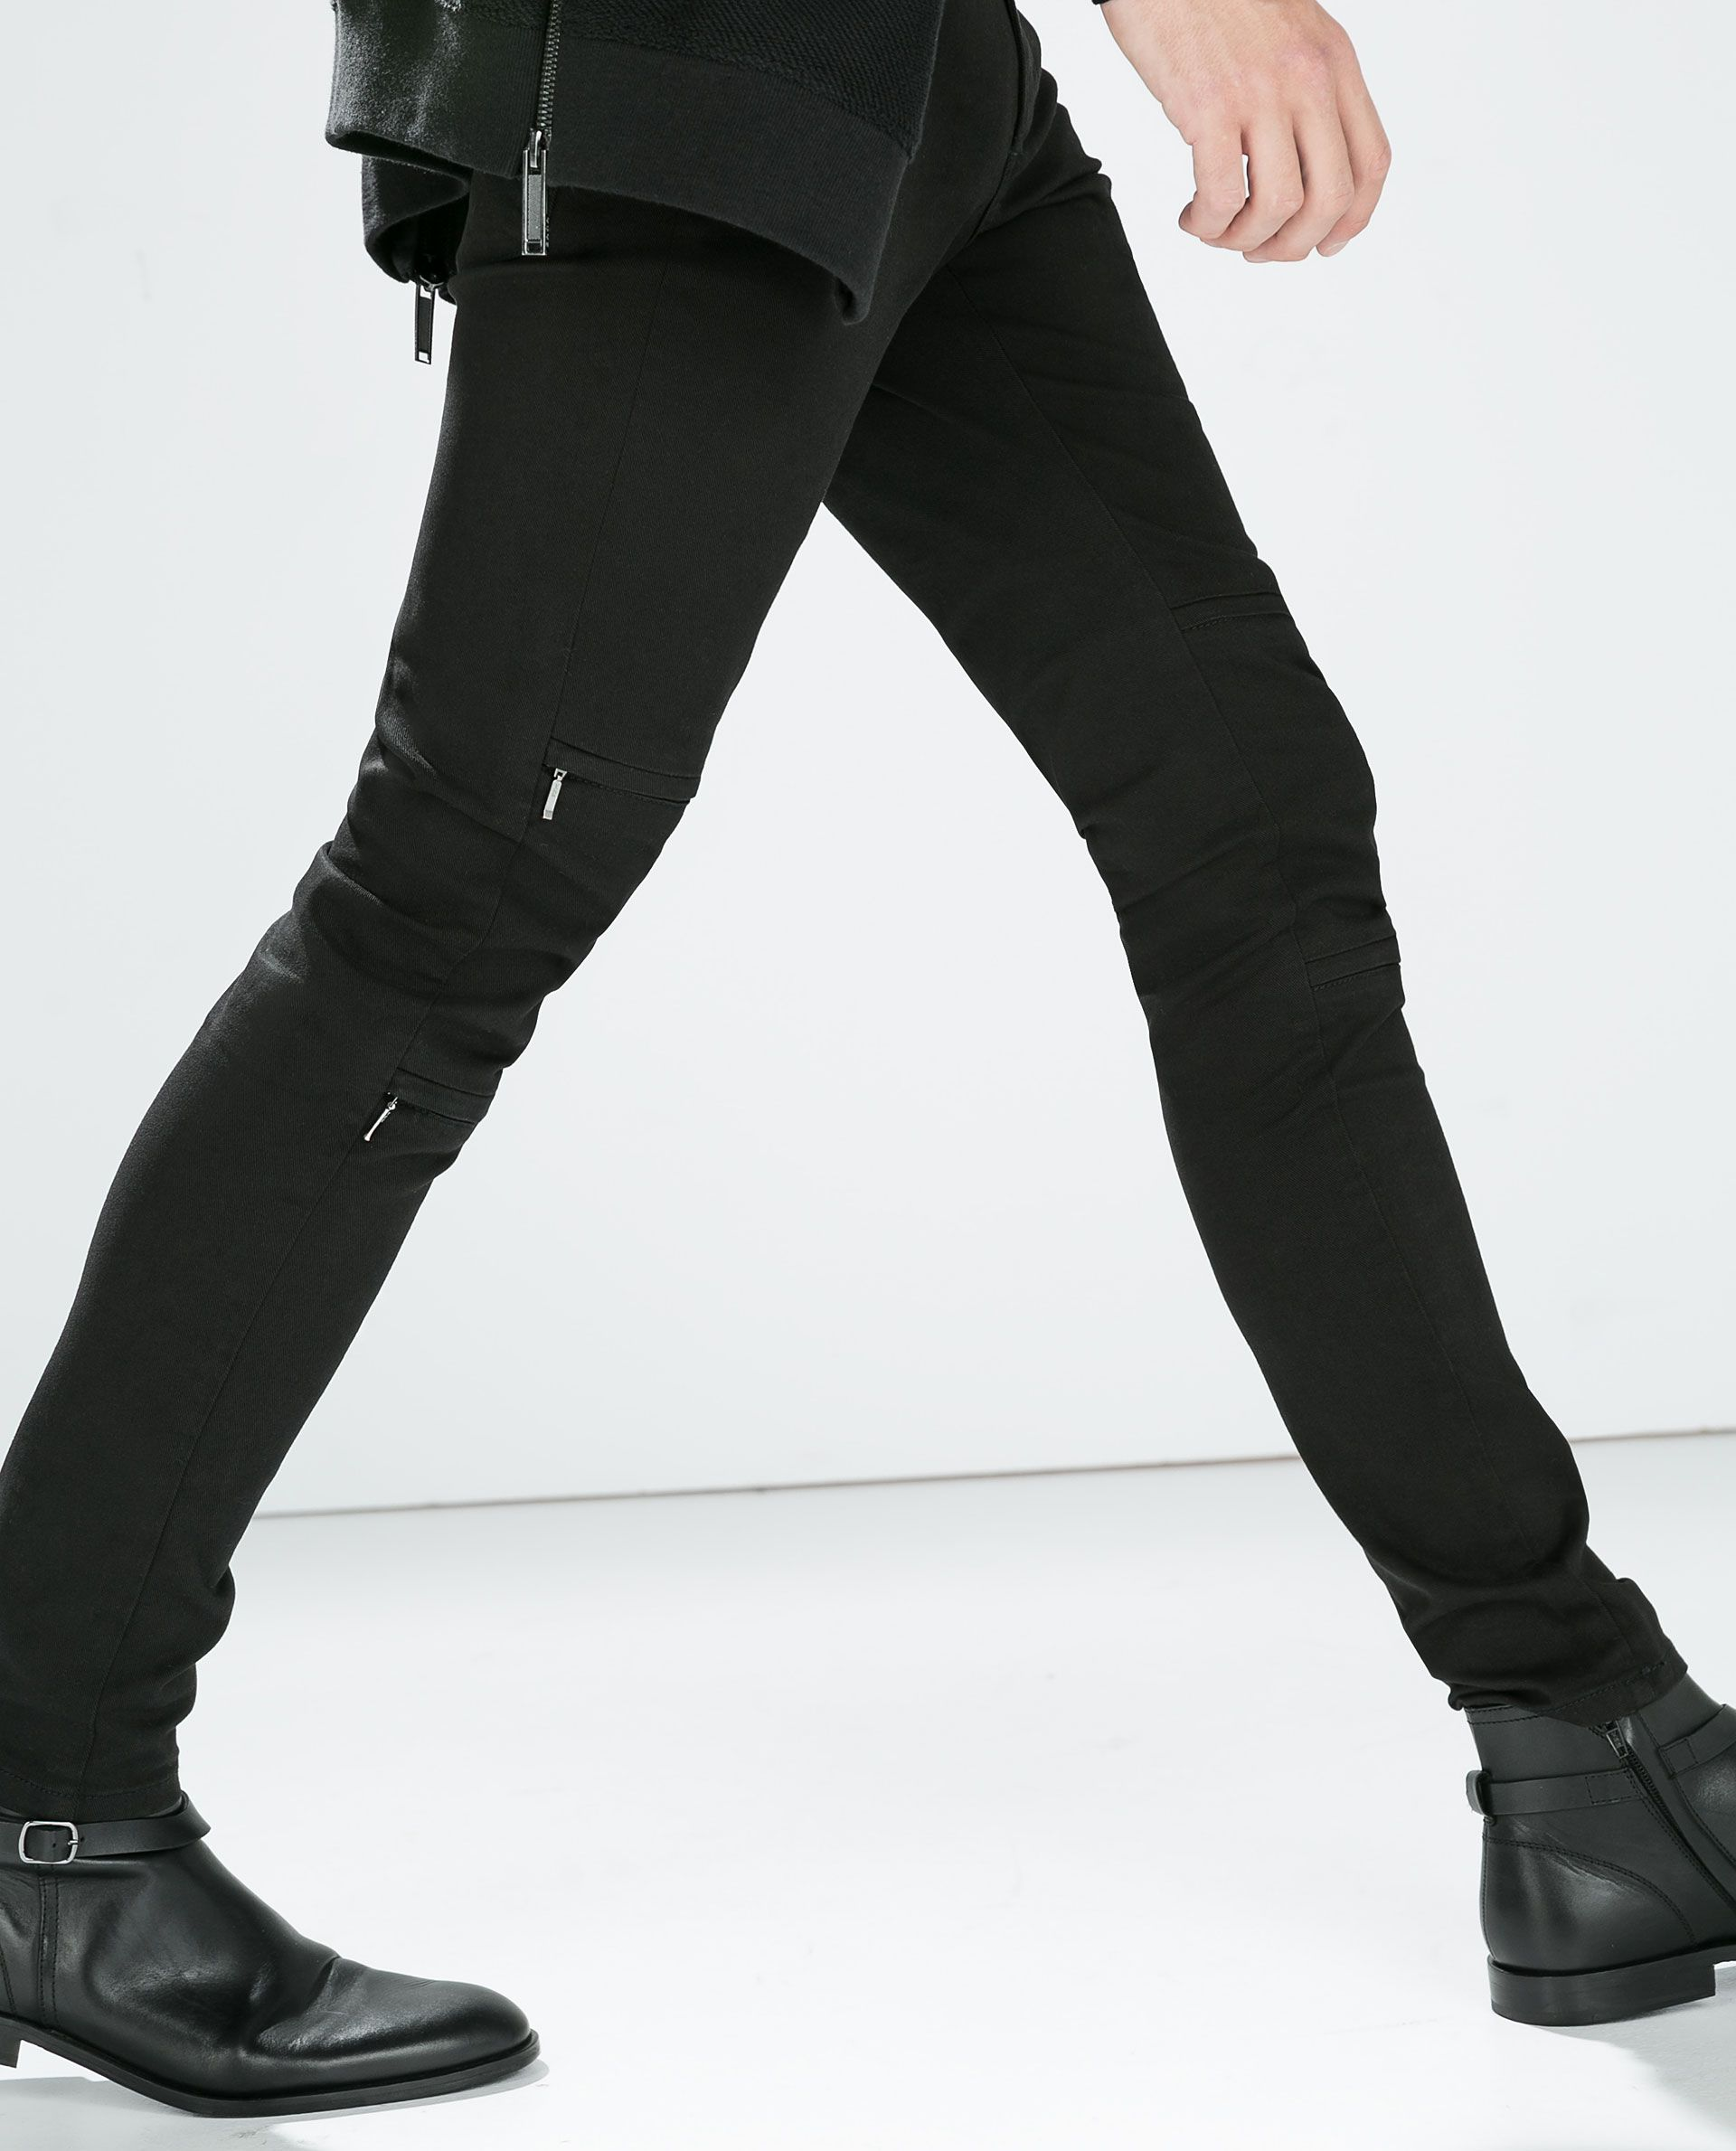 SKINNY TROUSERS WITH ZIPS - Jeans - MAN | ZARA Germany